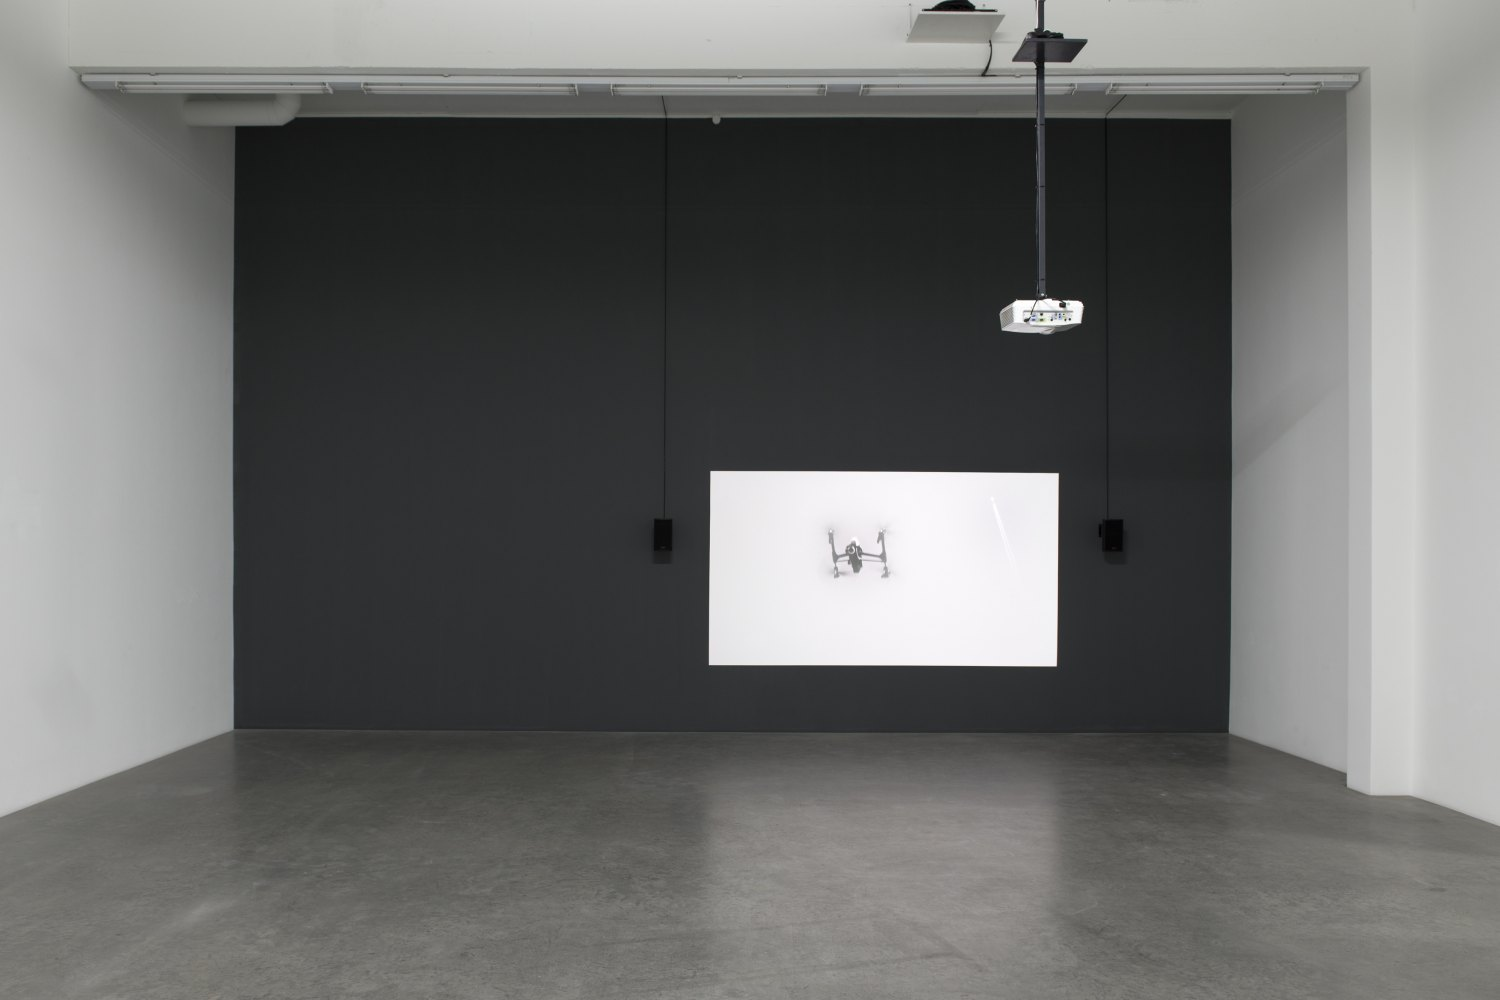 Sean Snyder Cloud Sediment (Gstaad), 2015 - 2016 16:9 format HD video, 7 minutes 47 seconds, black and white and color, audio, 180 cm x 320 cm projection on wall painted RAL 9043